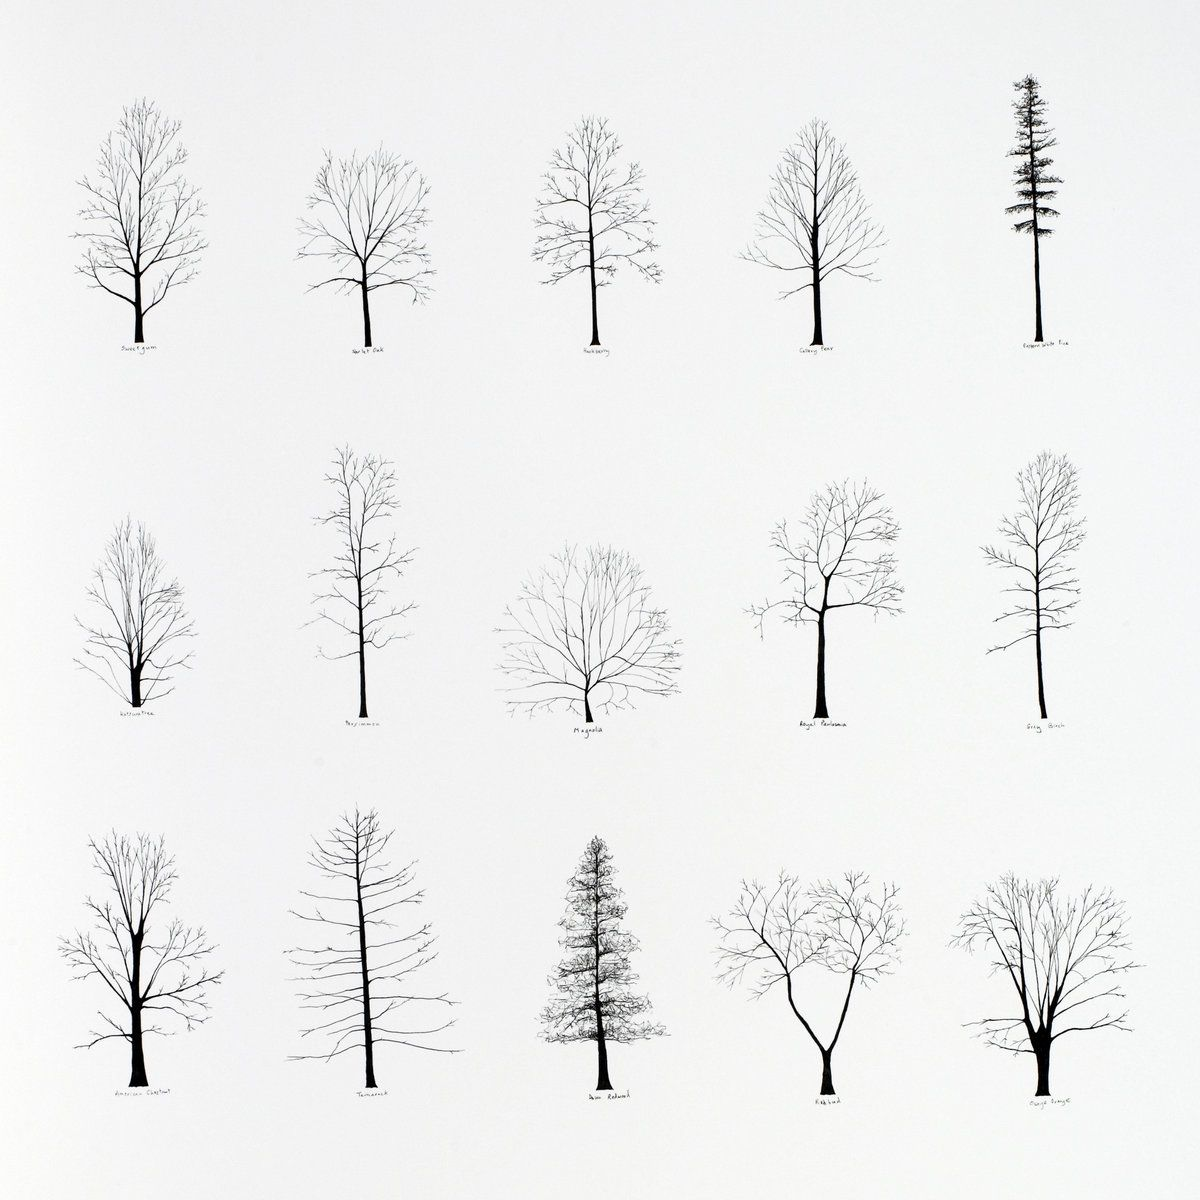 40+ images about ARQ / arbres on Pinterest   Trees, Katie O ...